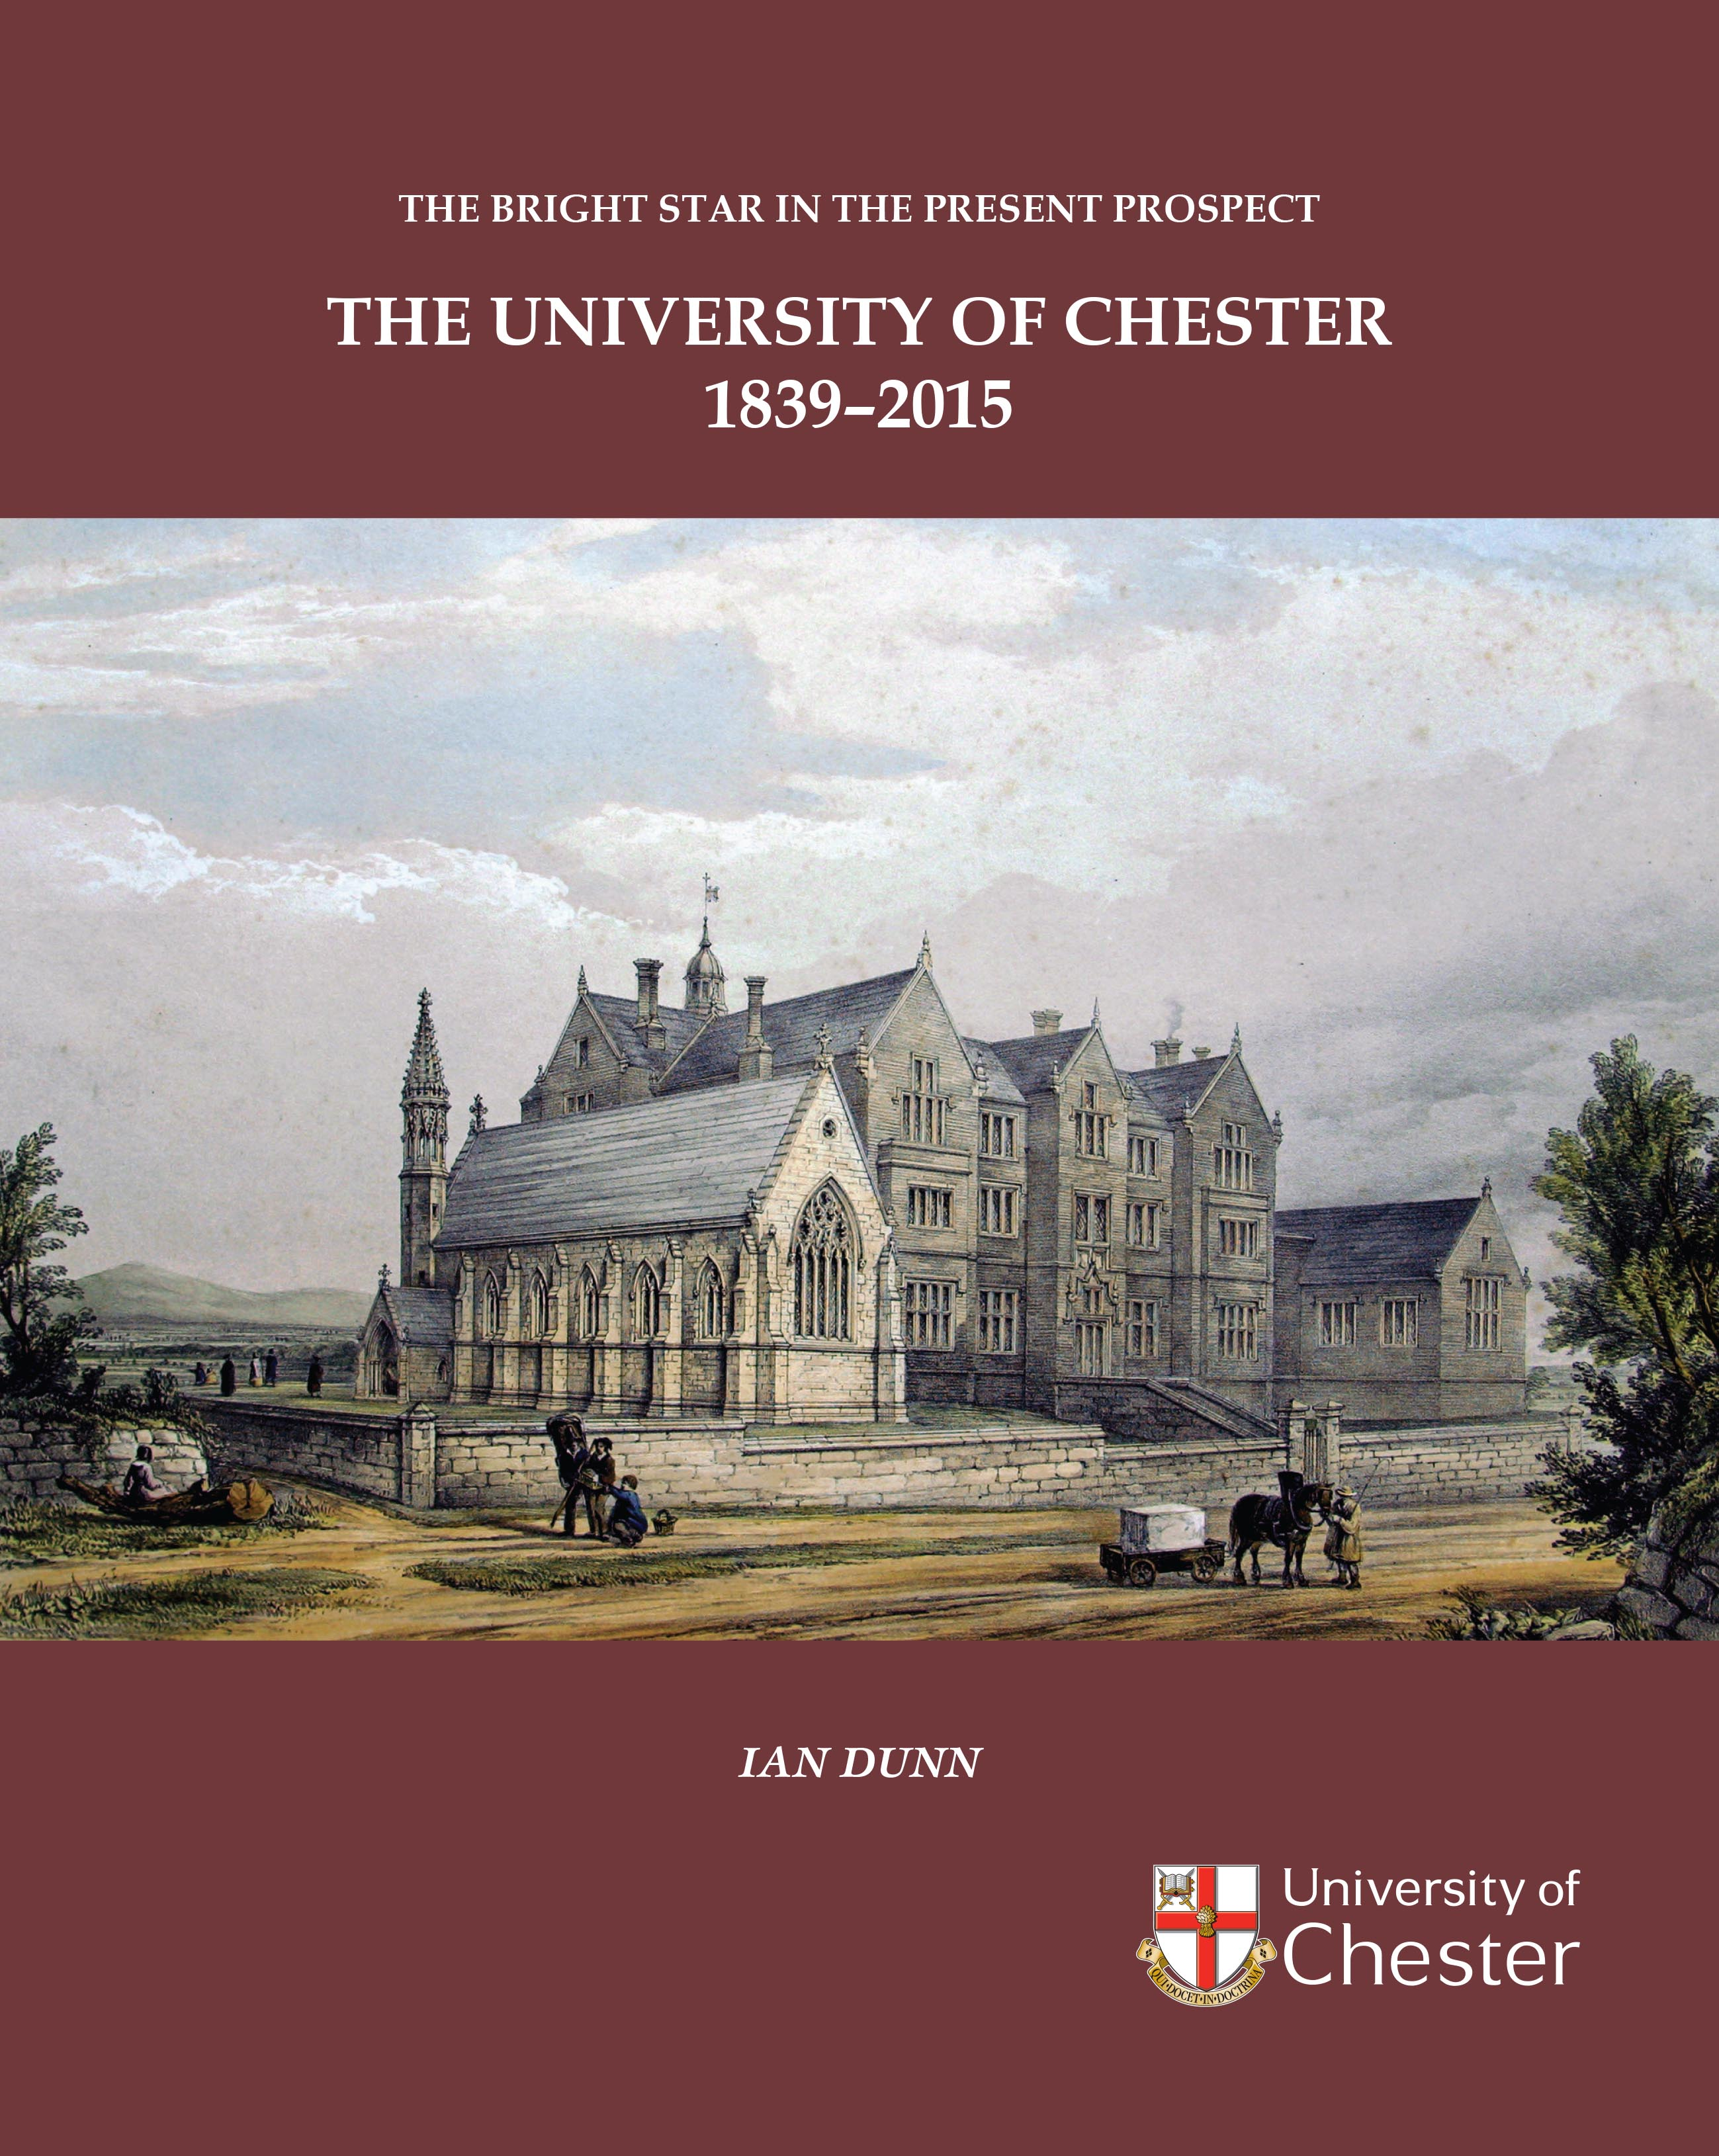 The Bright Star in the Present Prospect: The University of Chester 1839-2015